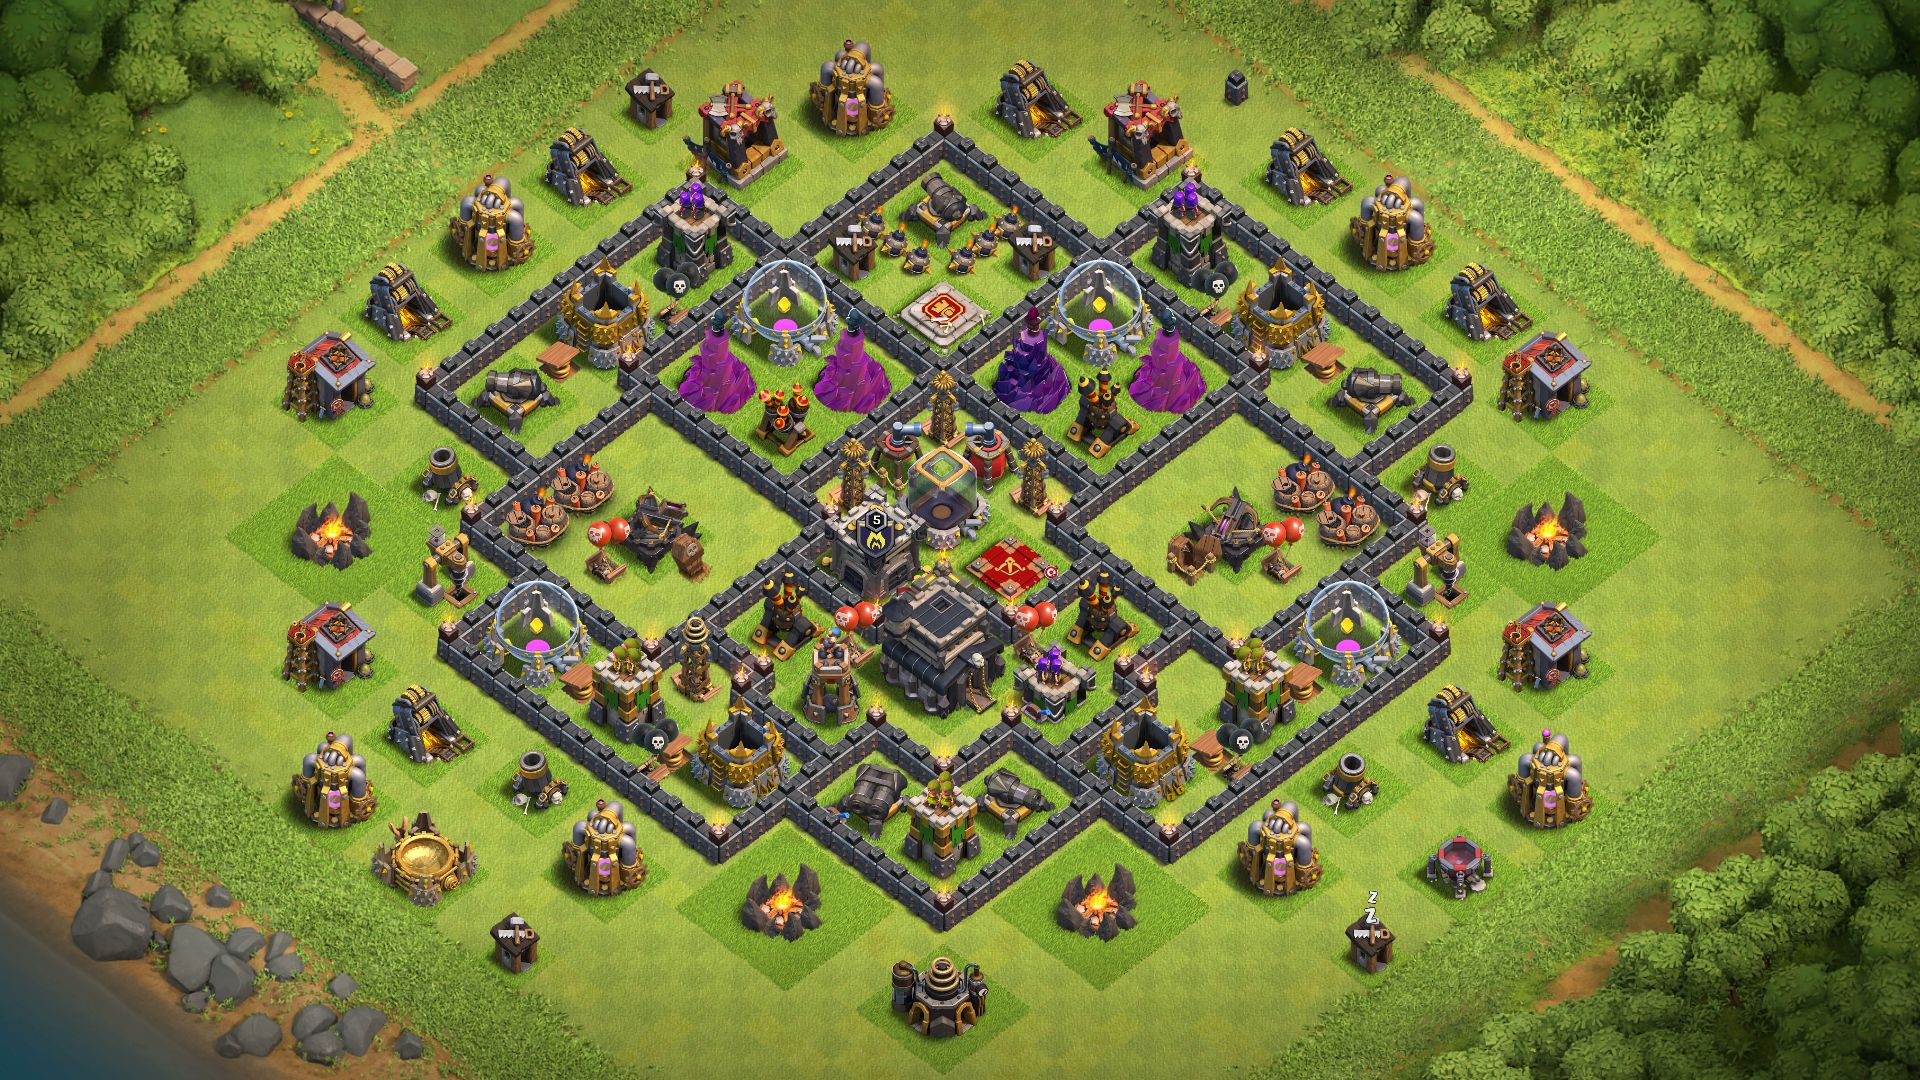 Best Th9 Dark Elixir Farming Base 2019 Base Coc Th 9 9